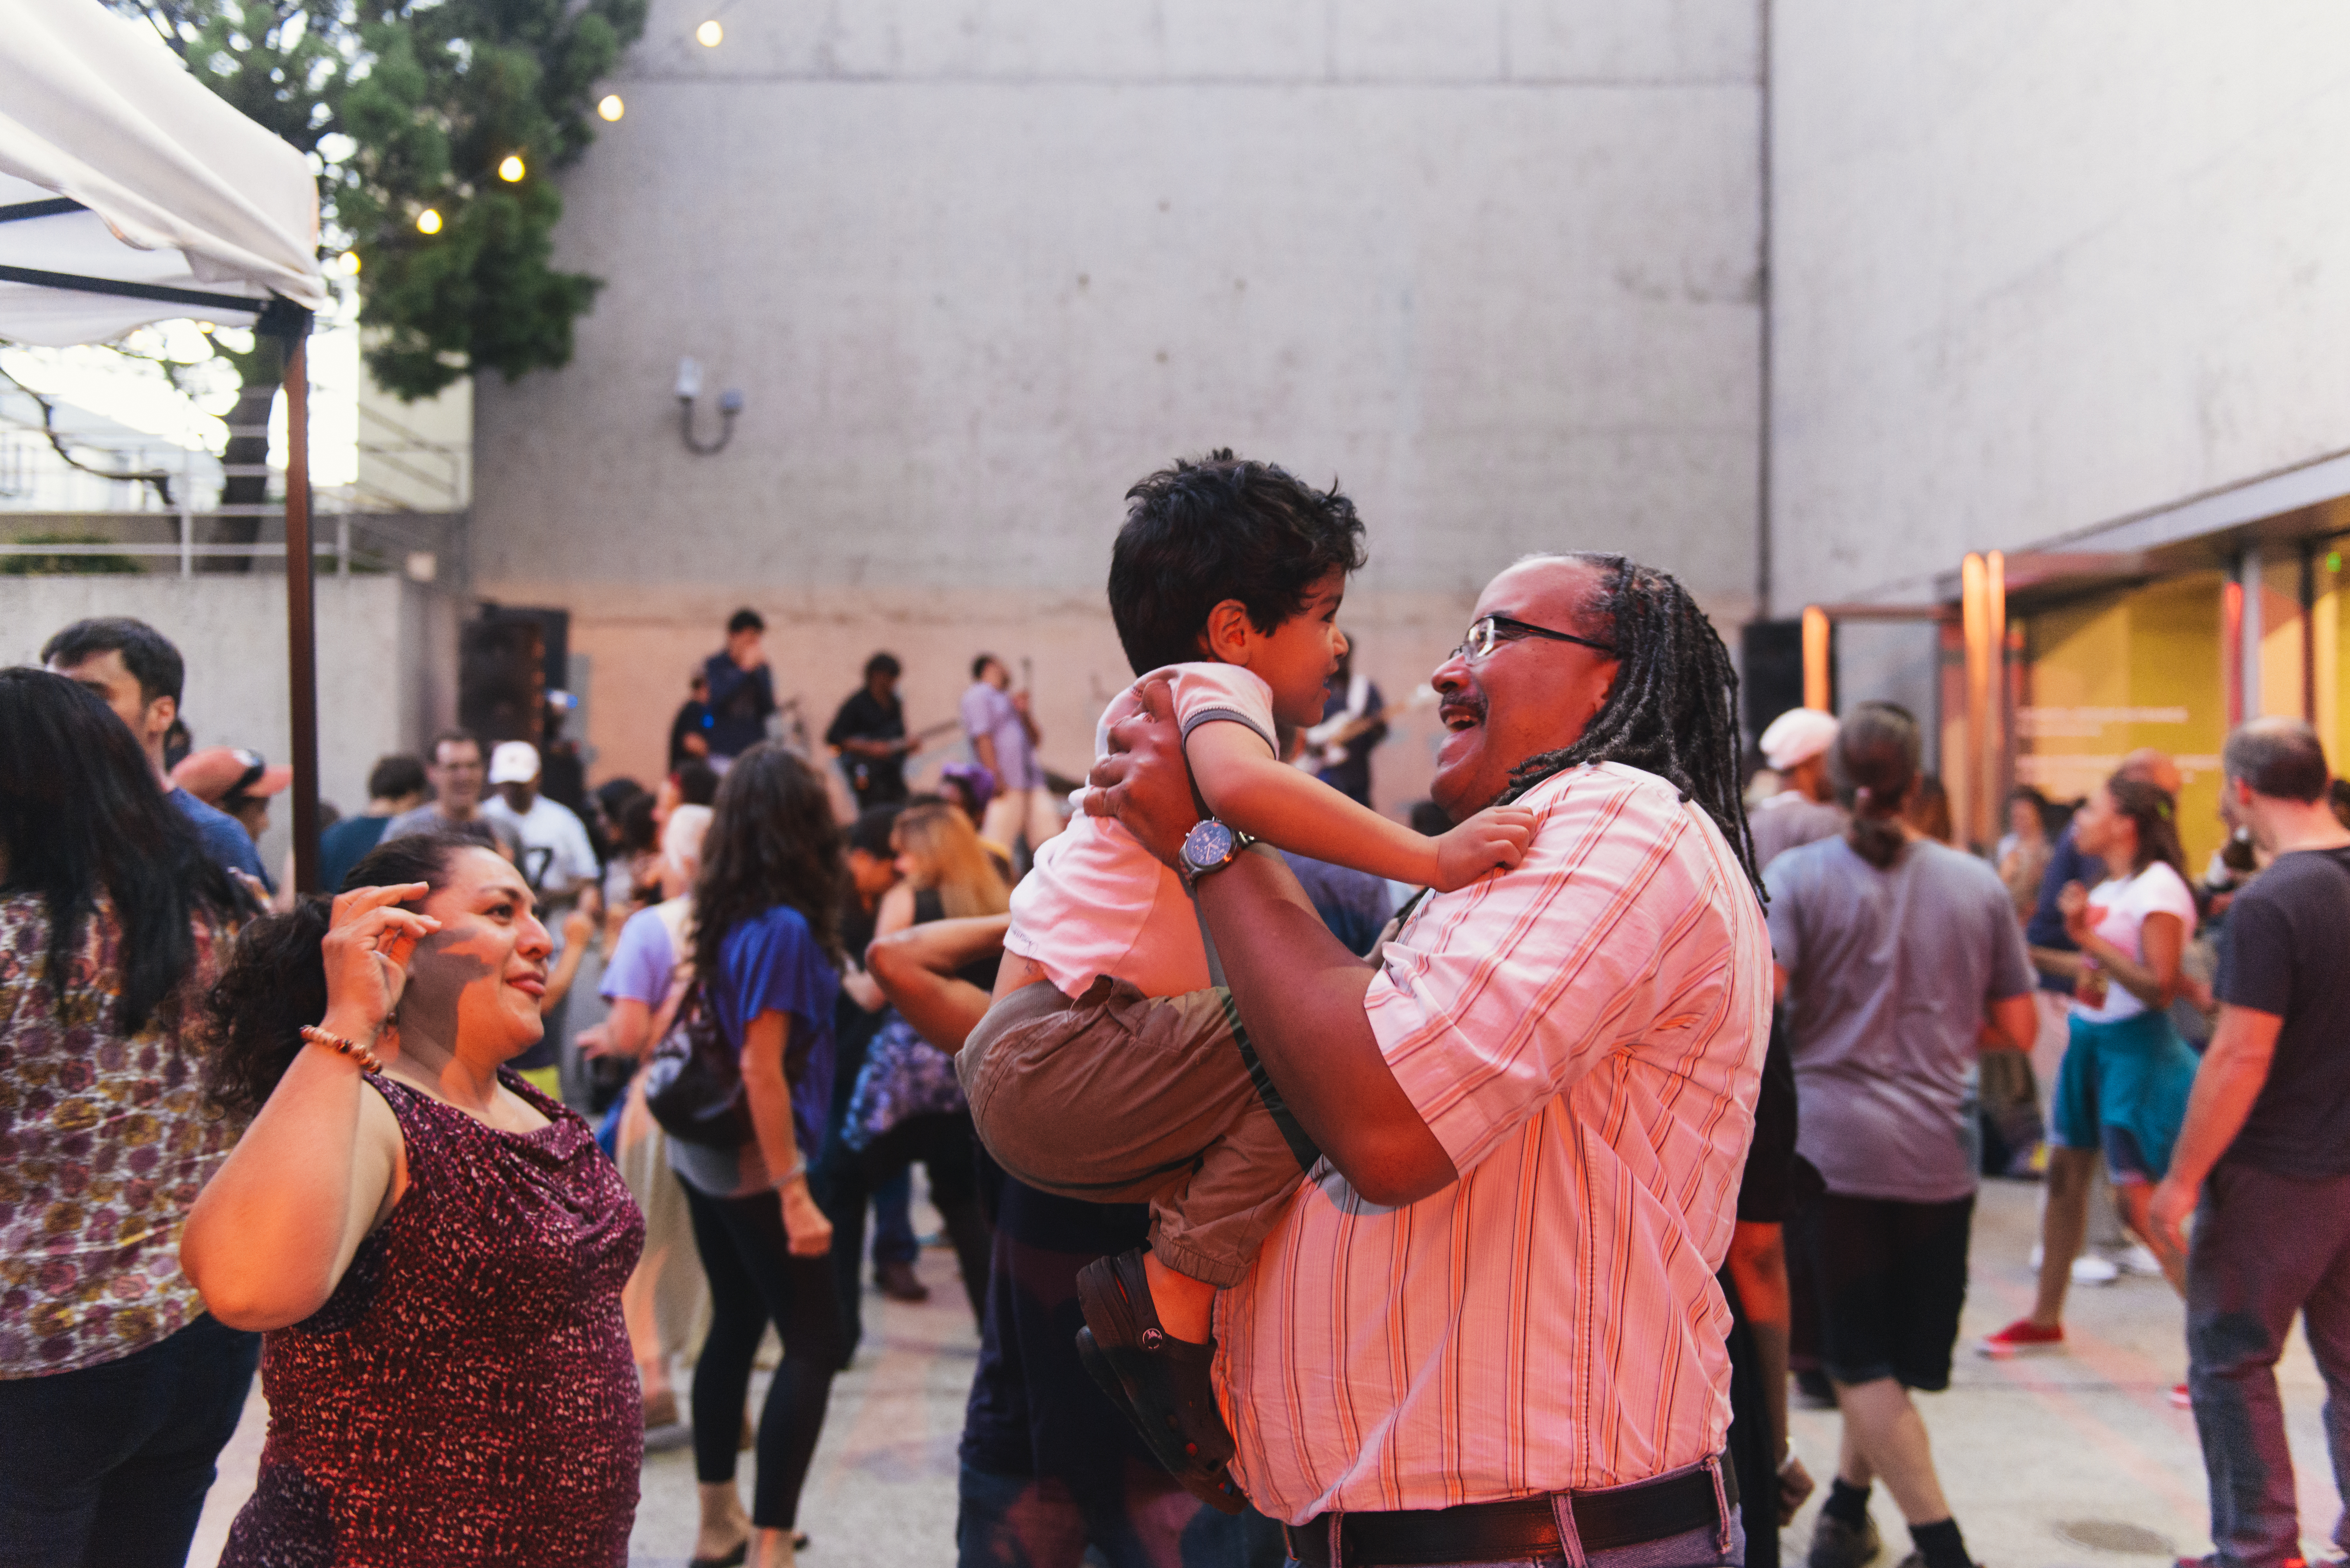 Families dancing at Friday Nights at OMCA